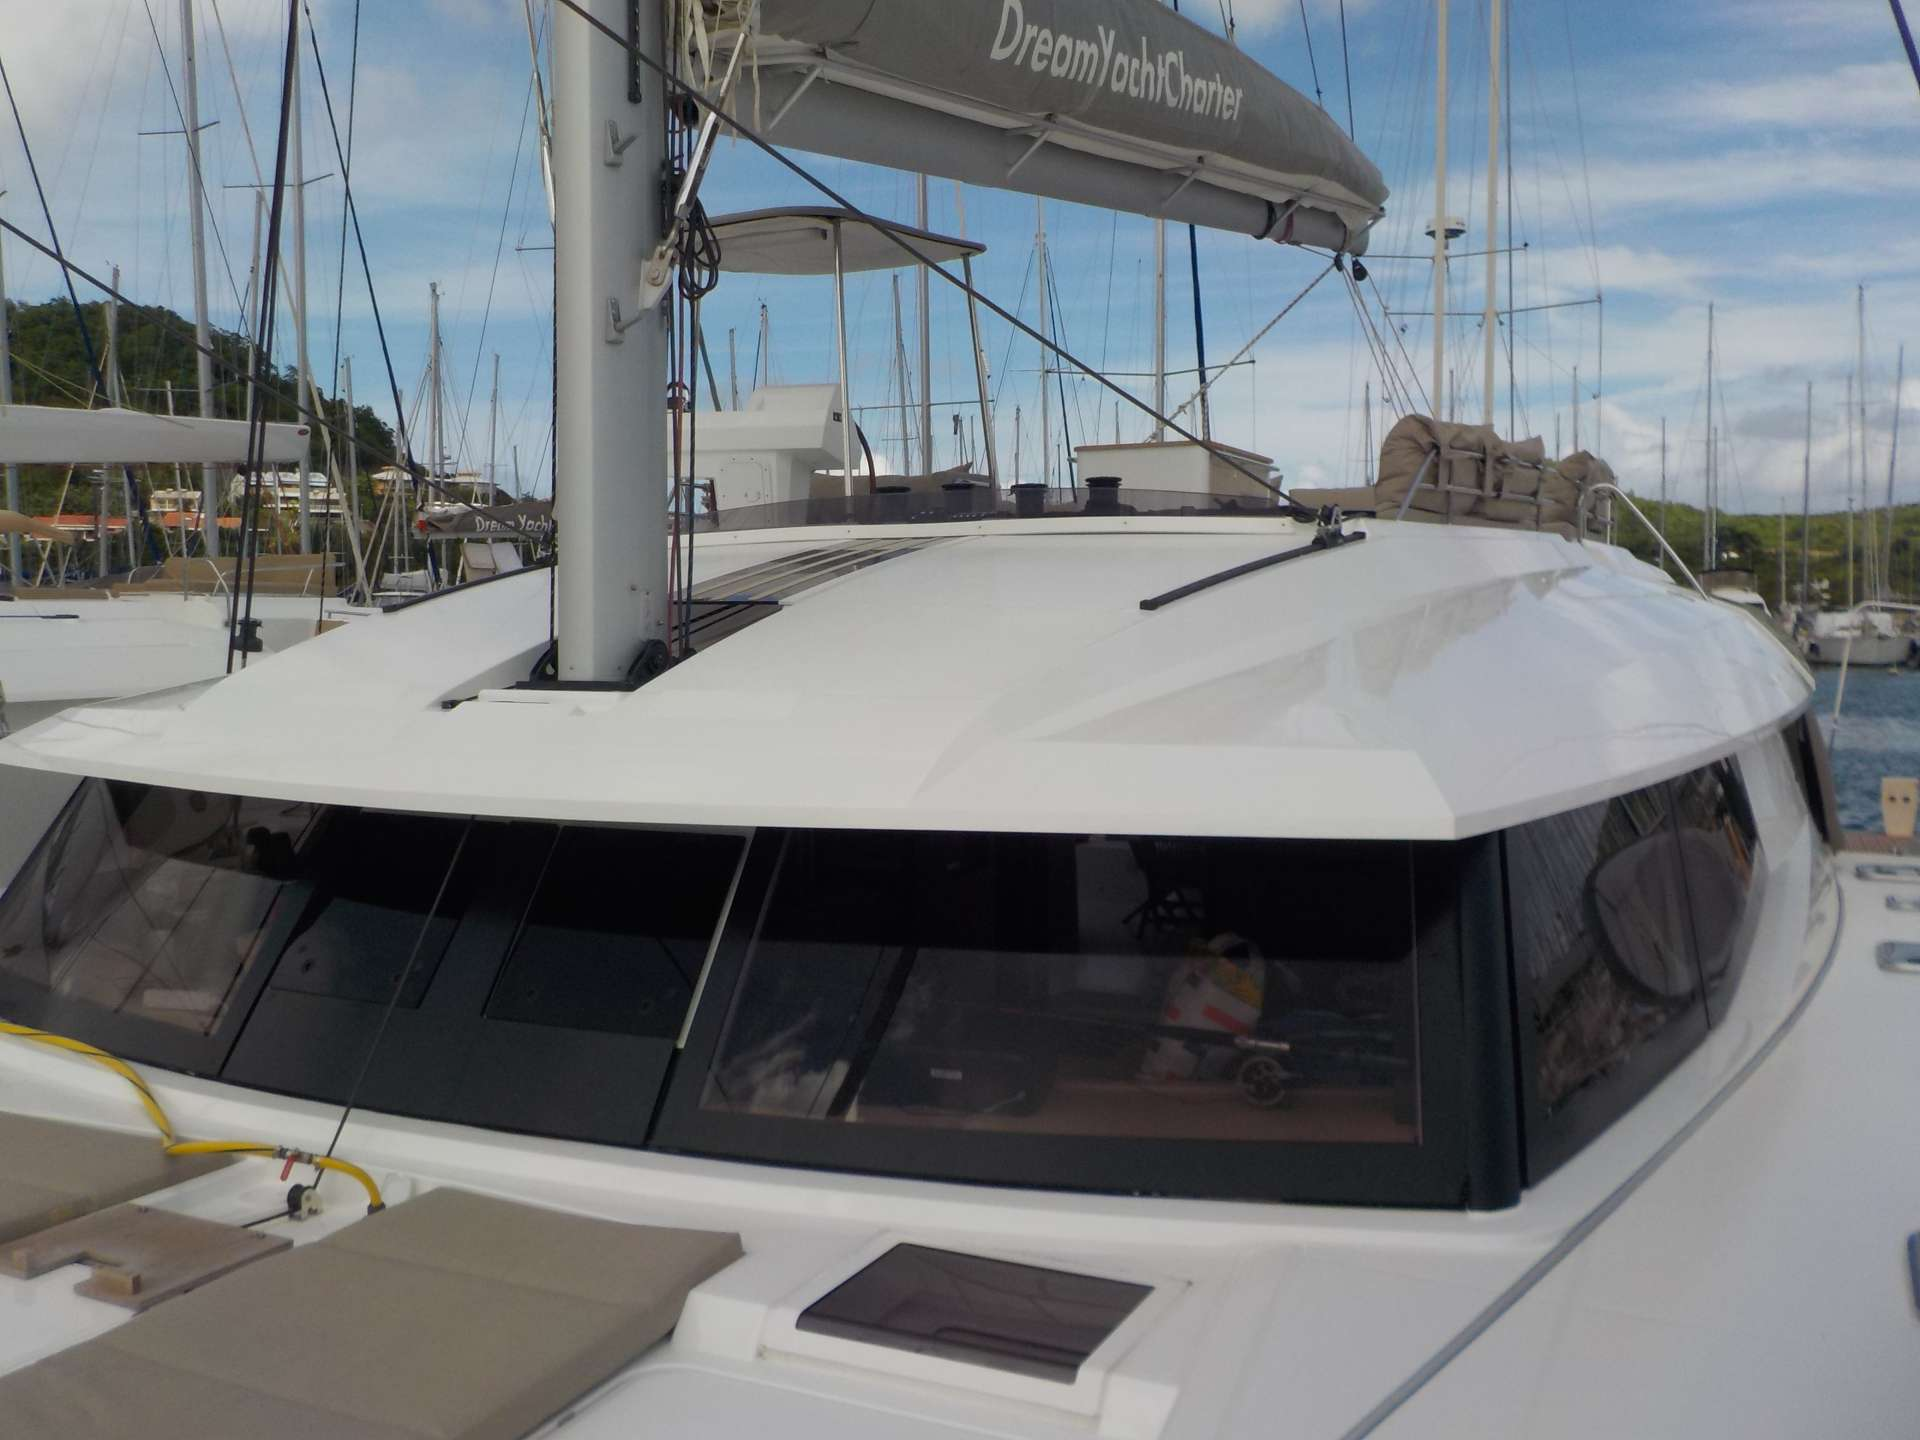 Image of Dream Canouan yacht #19